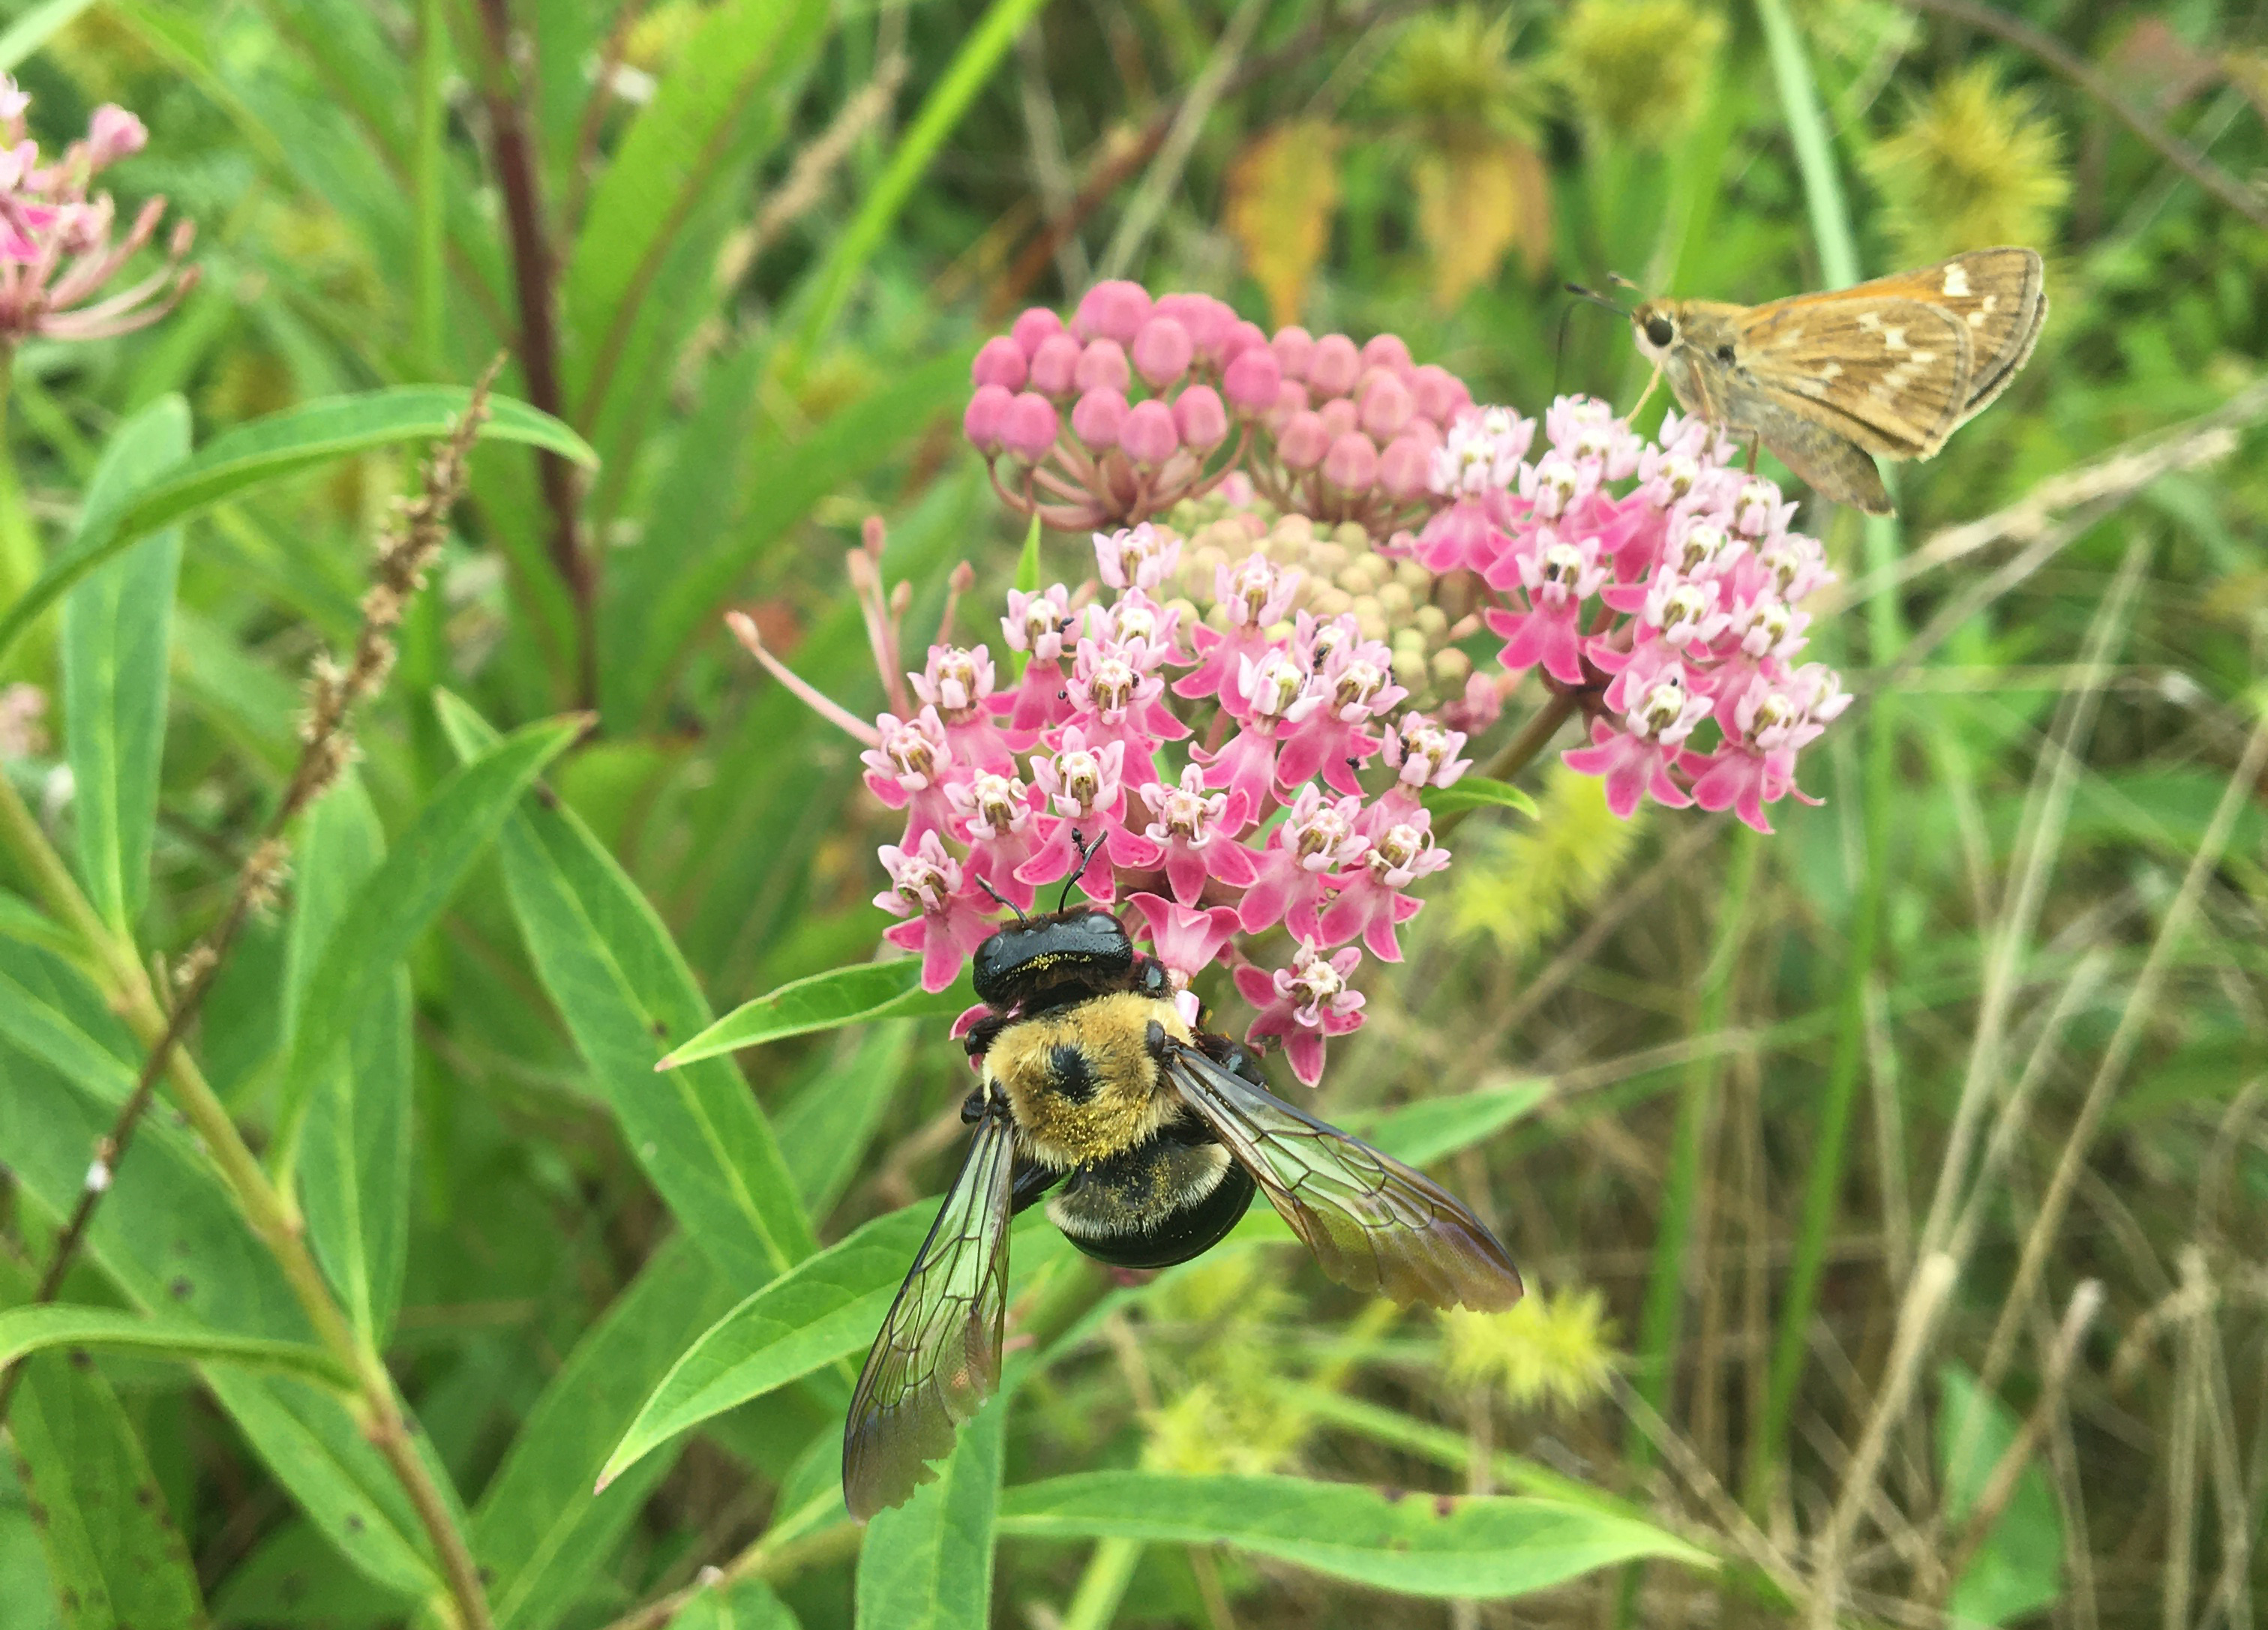 Saving Pollinator Habitats Focus of Joint Initiative Between Transportation Cabinet, Office of Kentucky Nature Preserves